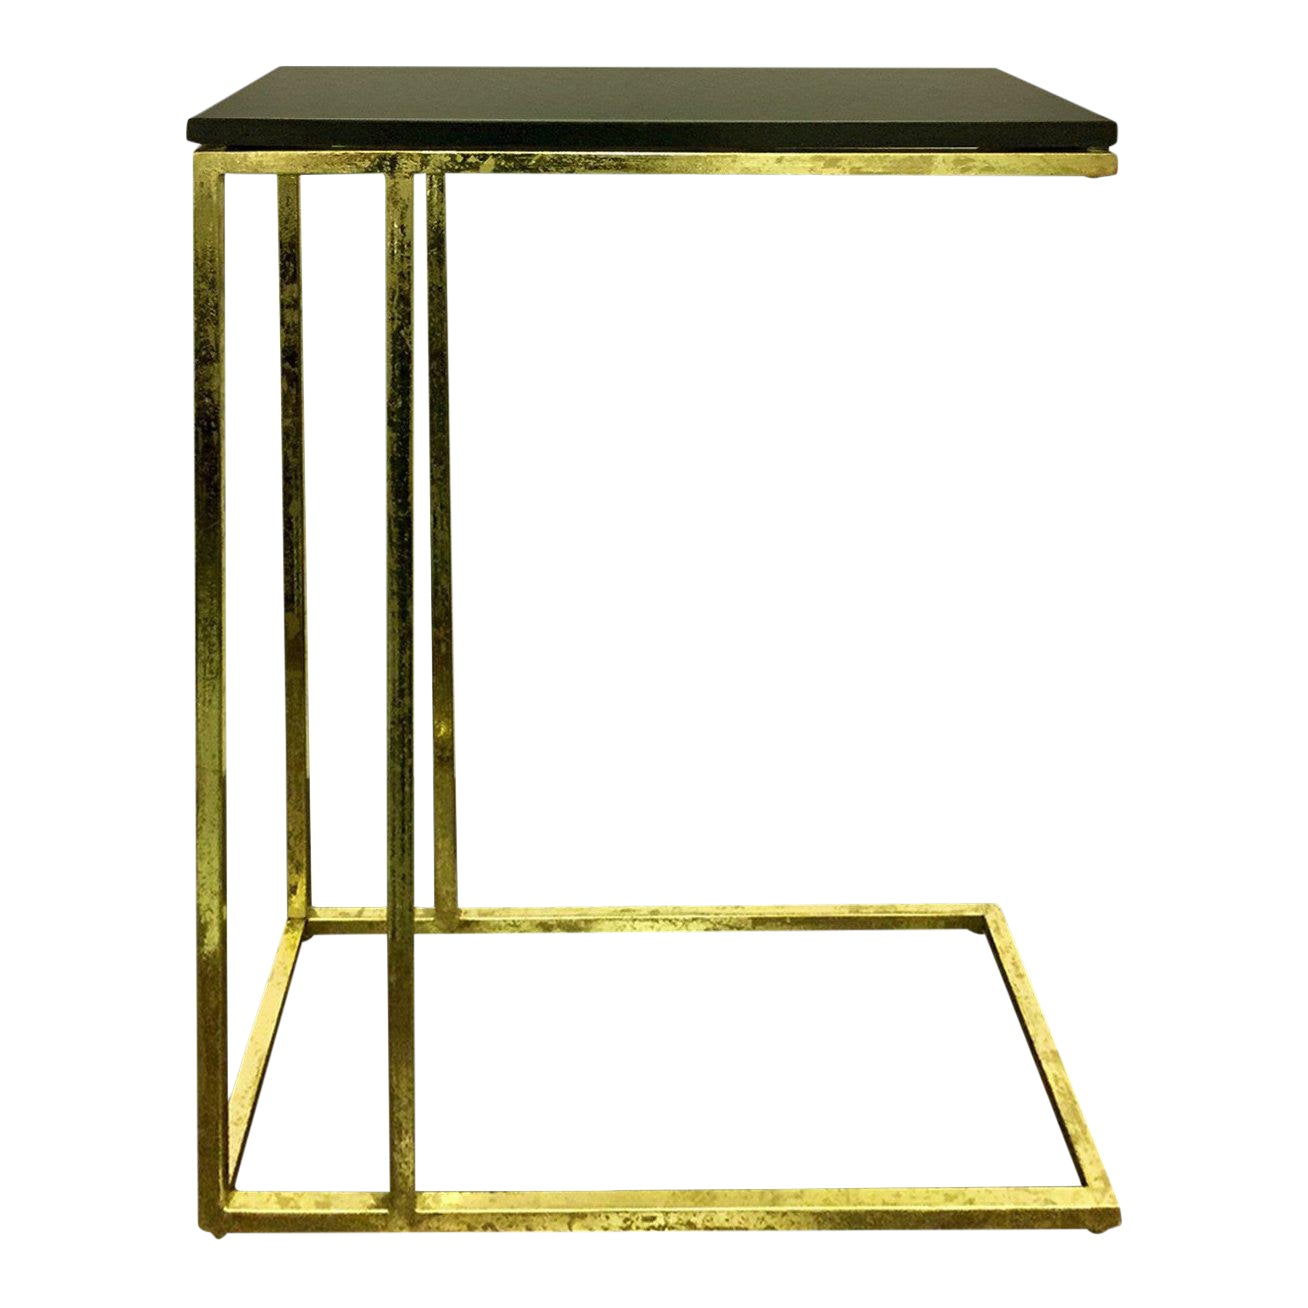 Contemporary Marko Marble Top Accent Table, Living Room, Side Table, Tray  Table, C Table- Gold Leafing